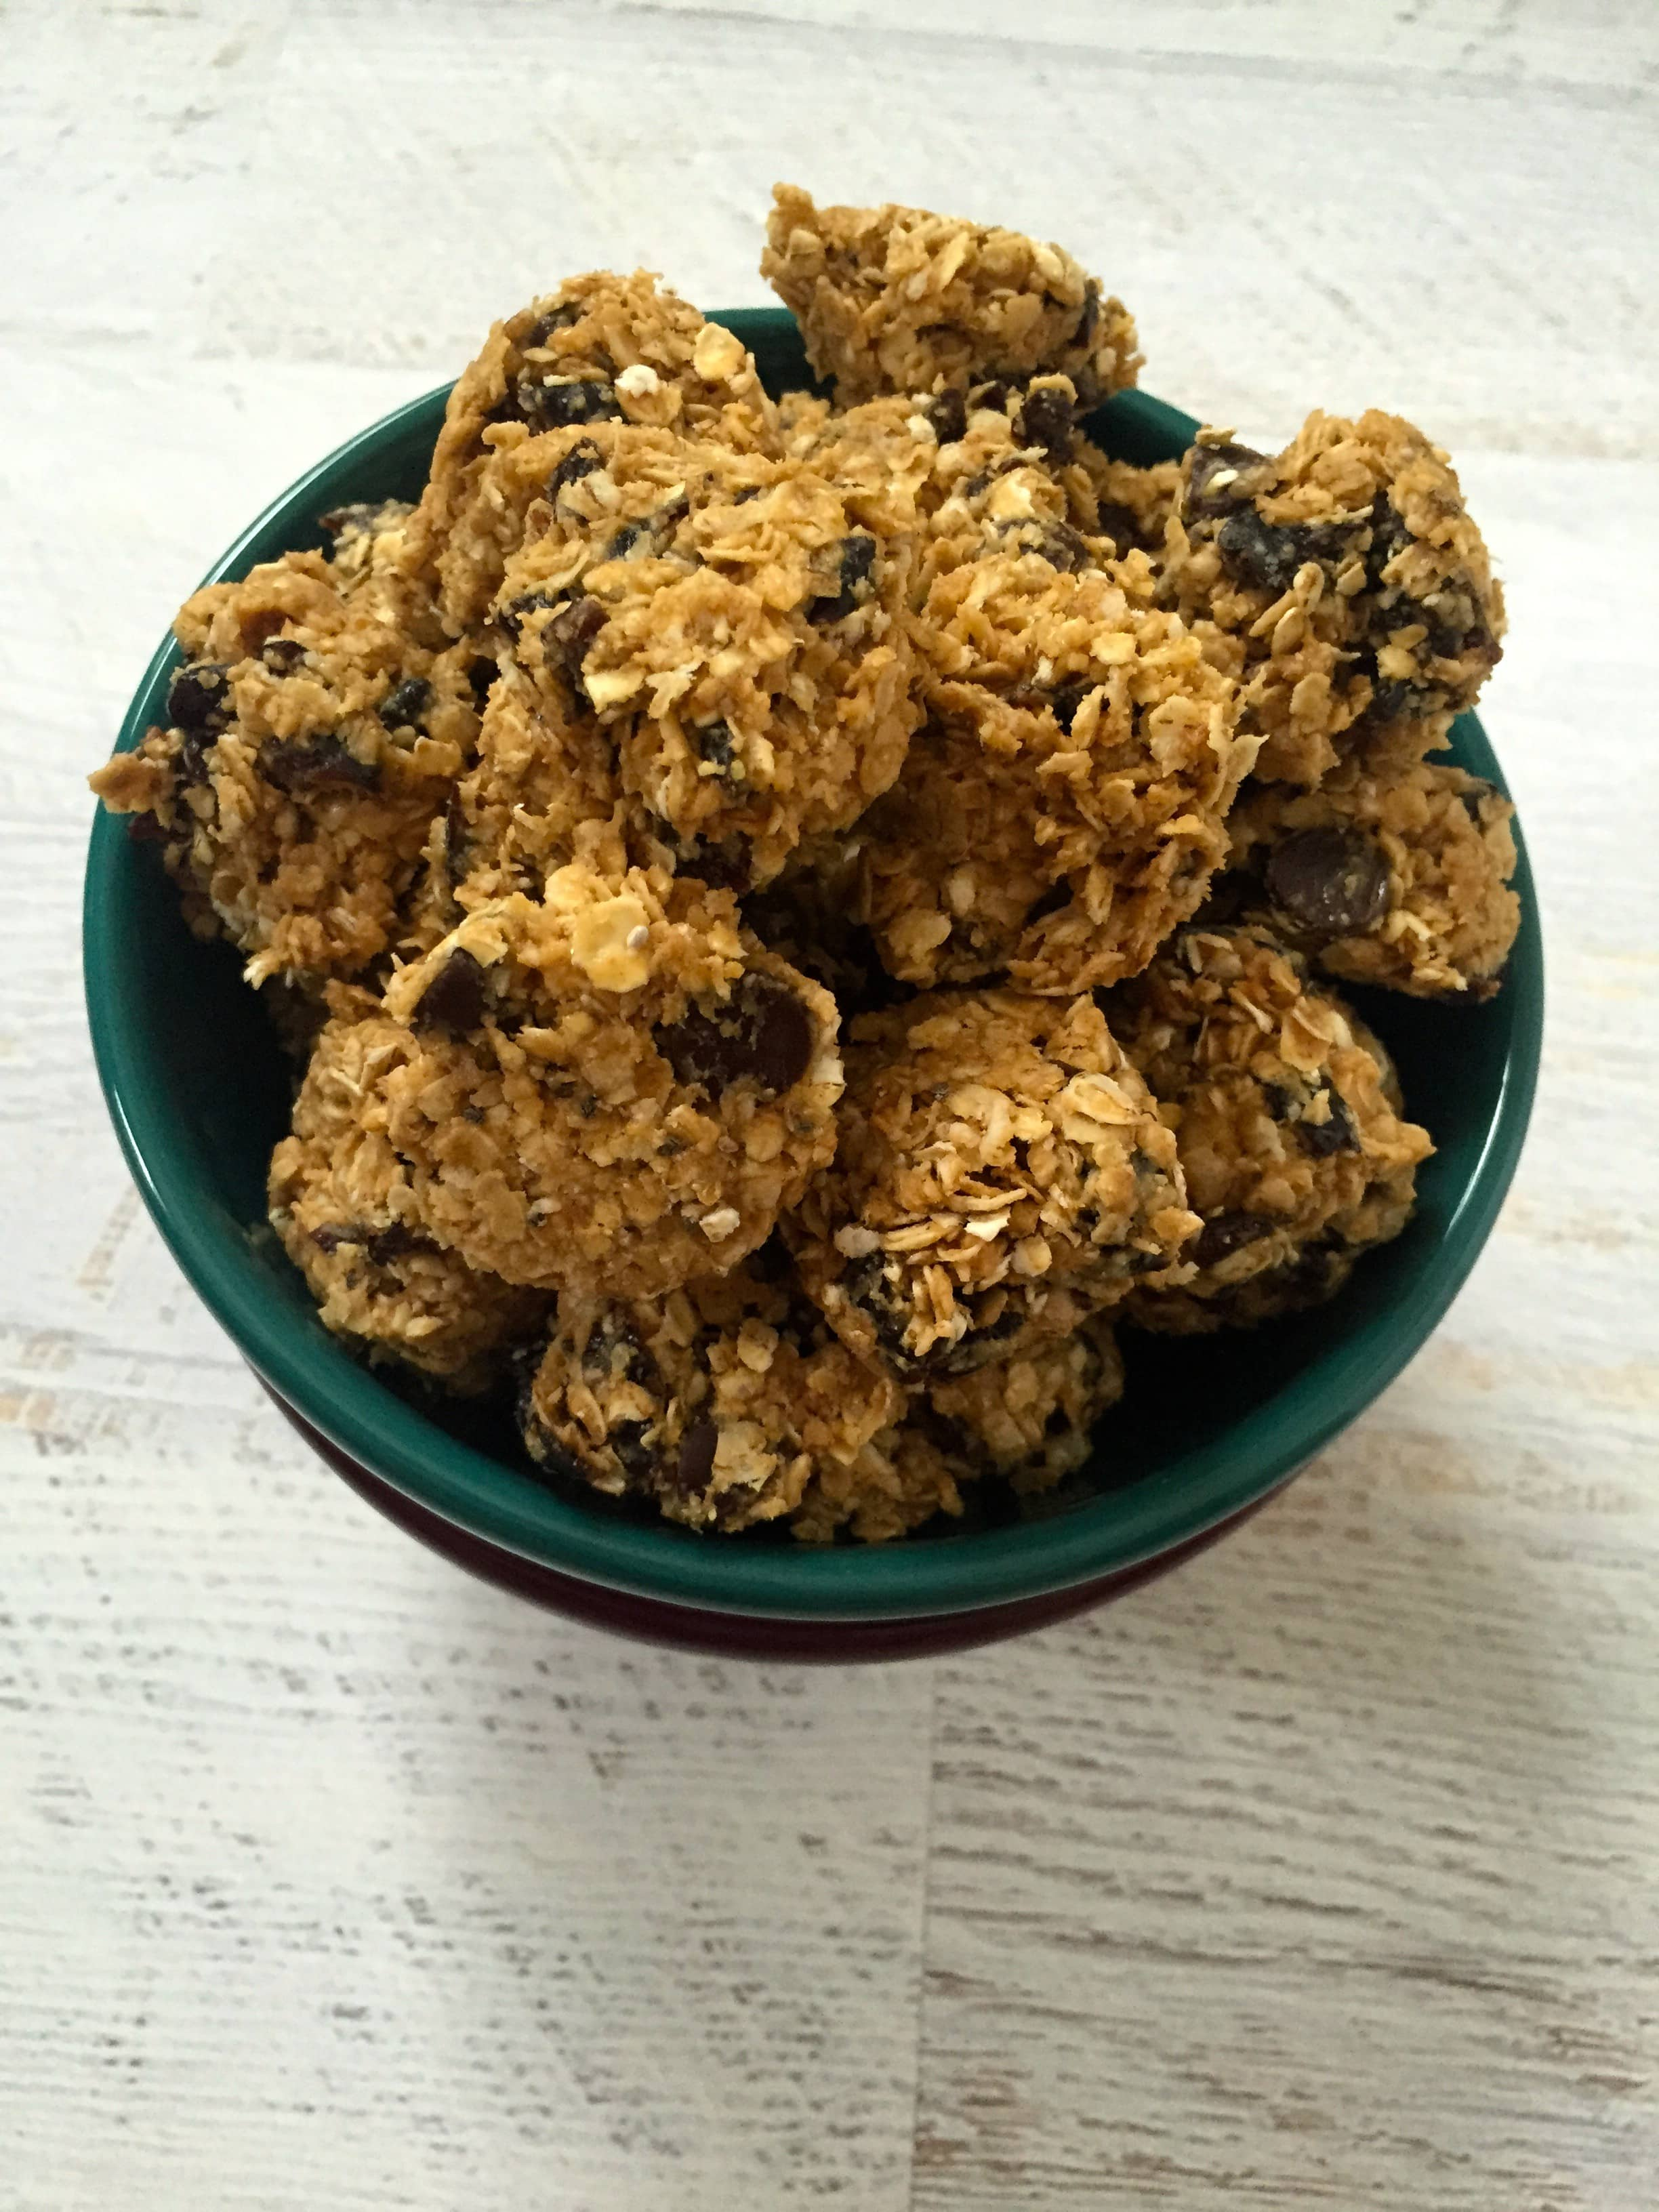 Peanut Butter Oatmeal Prune Dark Chocolate Bites